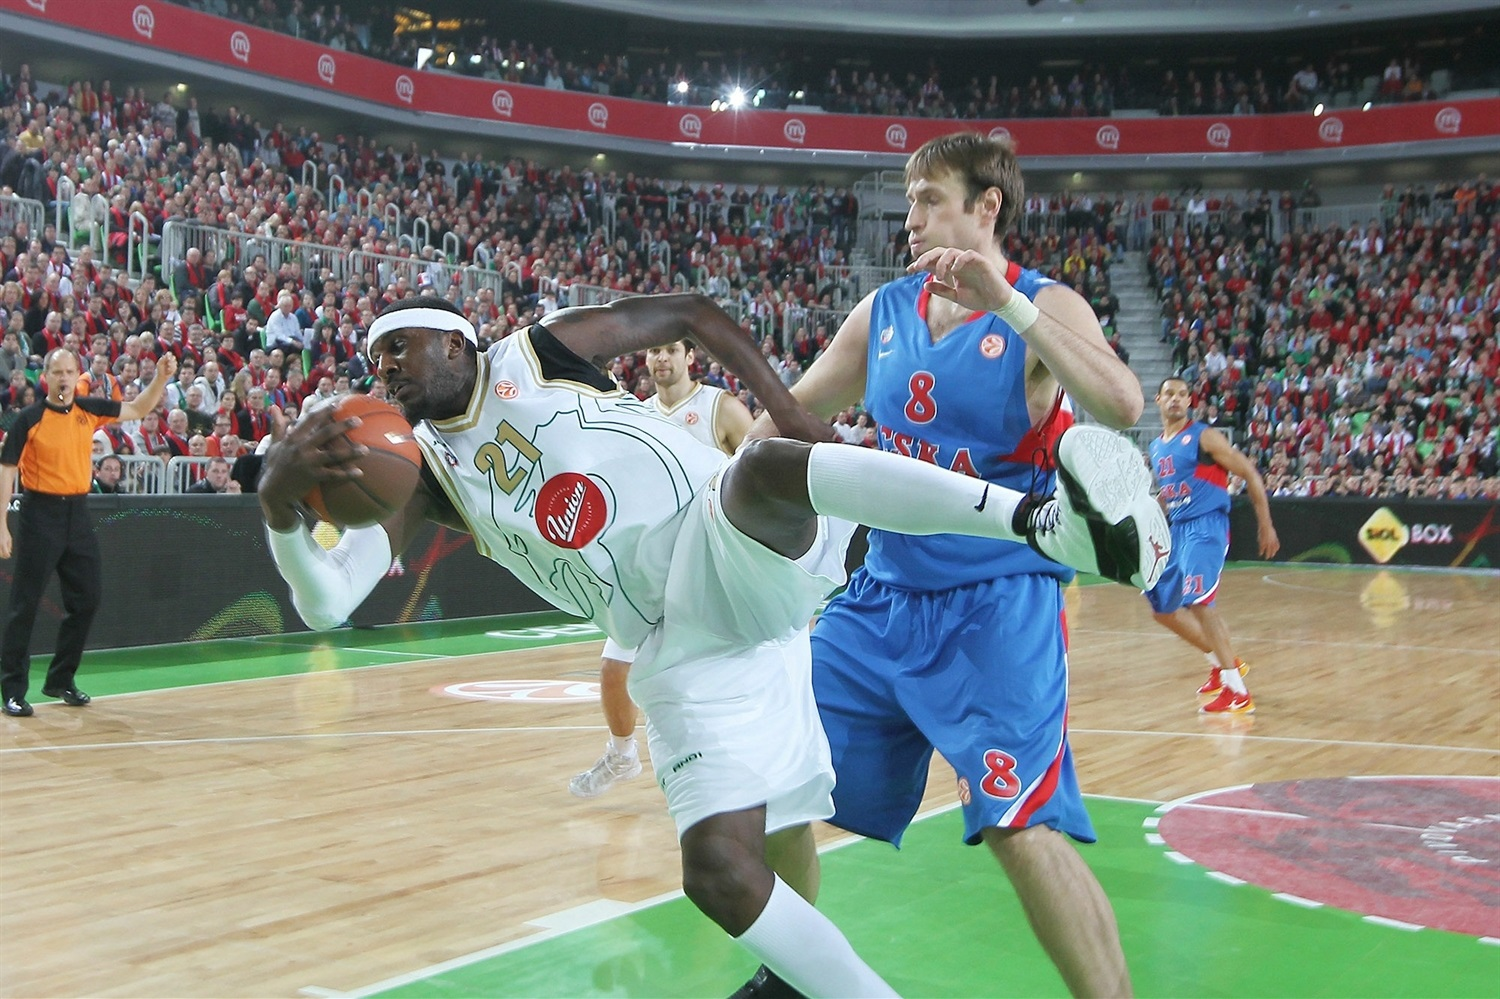 Kevinn Pinkney - Union Olimpija - EB10